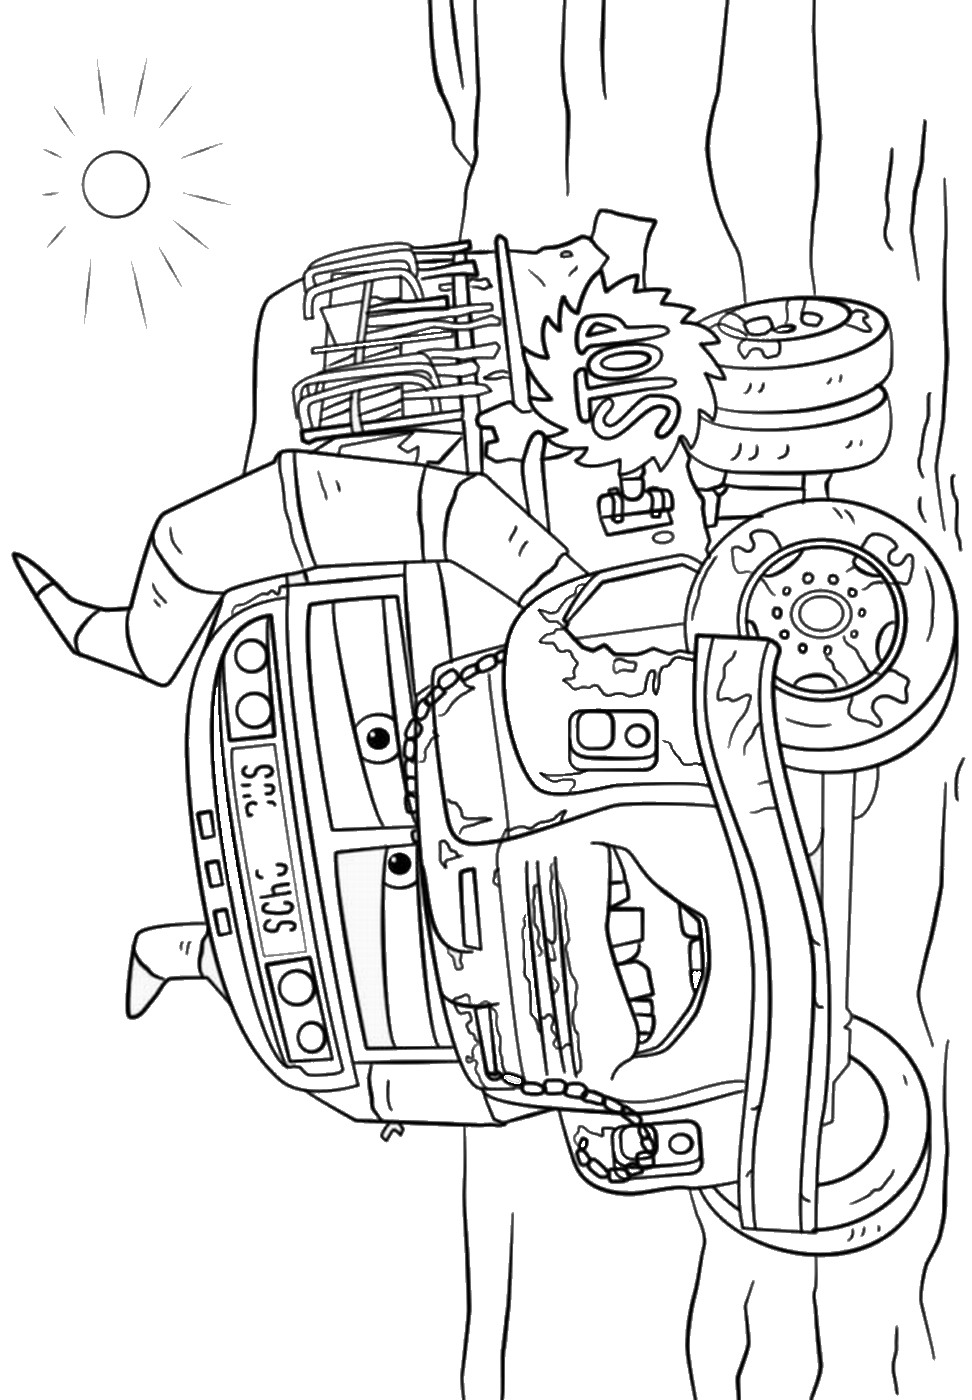 cars 2 pictures to print cars 3 coloring pages cars 2 pictures to print